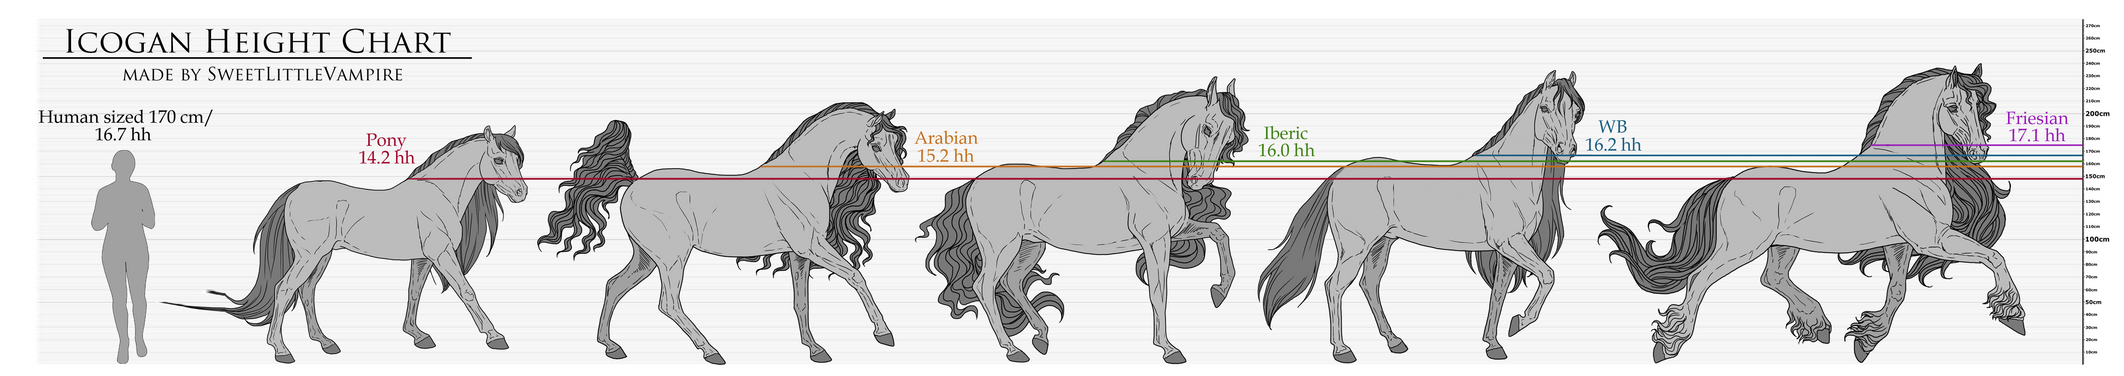 Official Icogan Height Chart by SweetLittleVampire